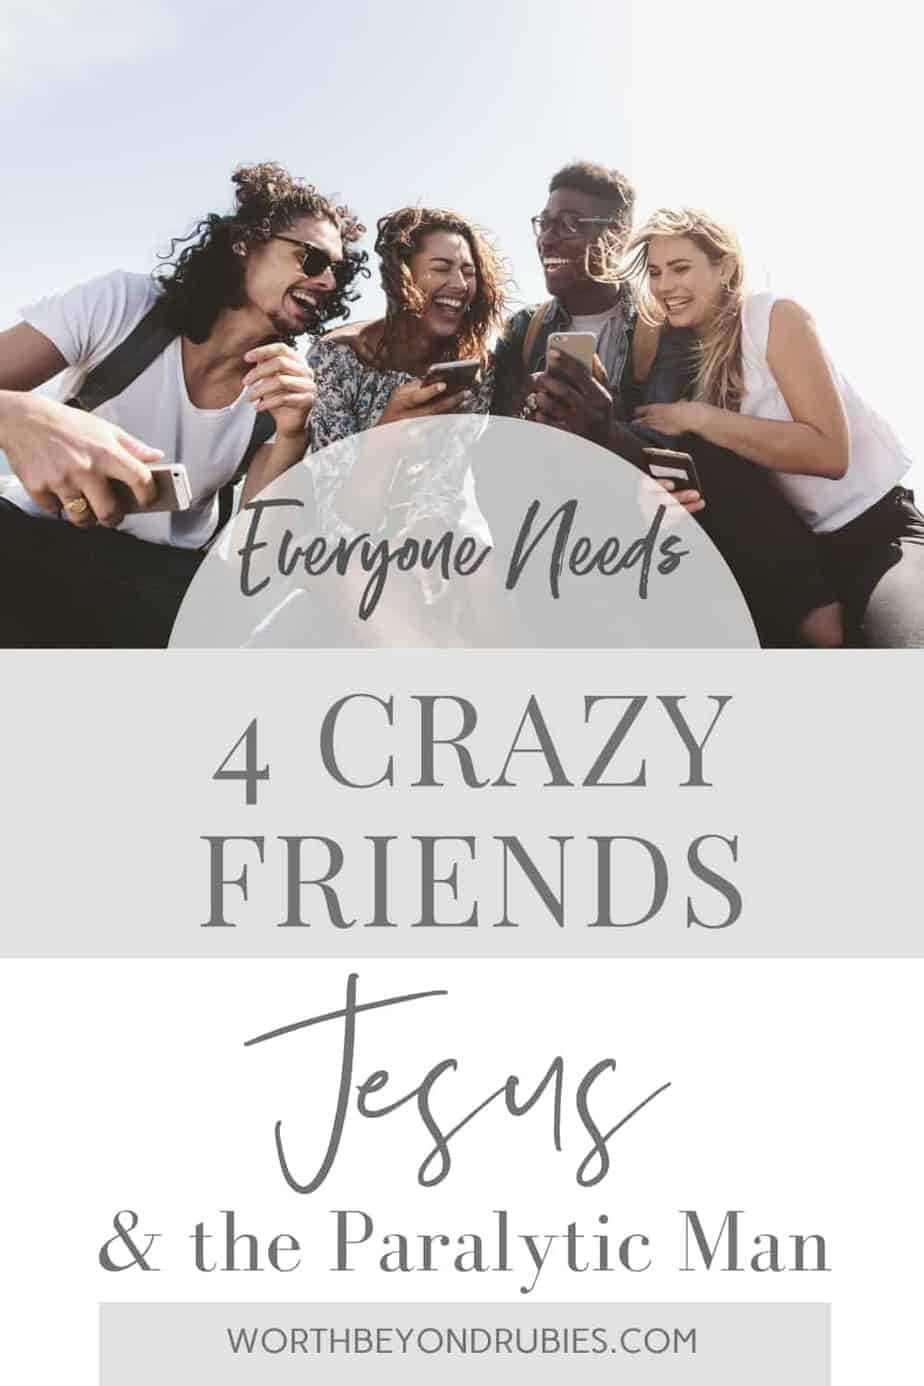 An image of 2 male and 2 female friends looking at something together outside and laughing and text that says Everyone Needs 4 Crazy Friends - Jesus and the Paralytic Man